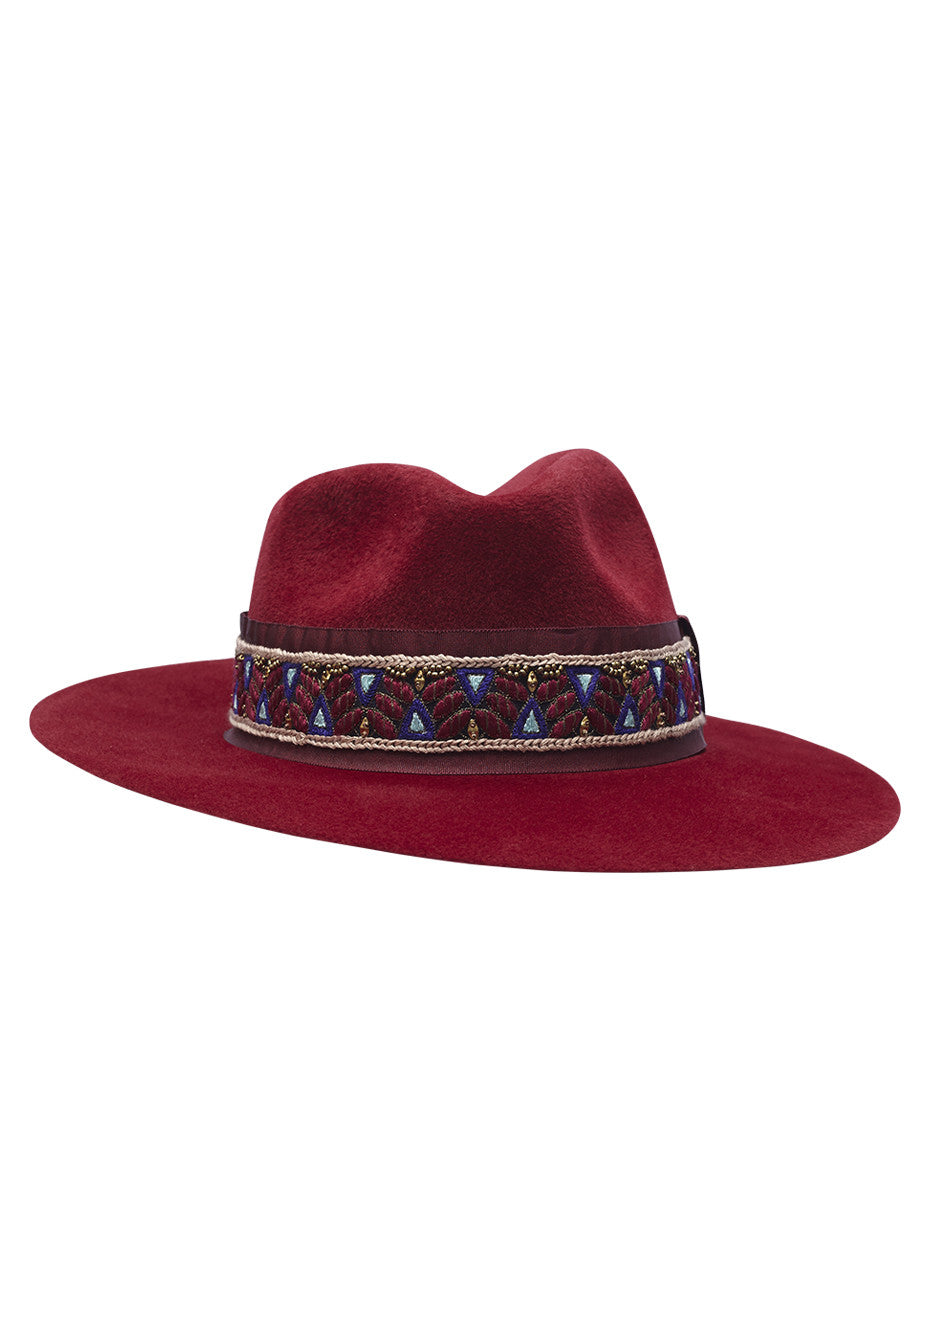 Dark red felt hat